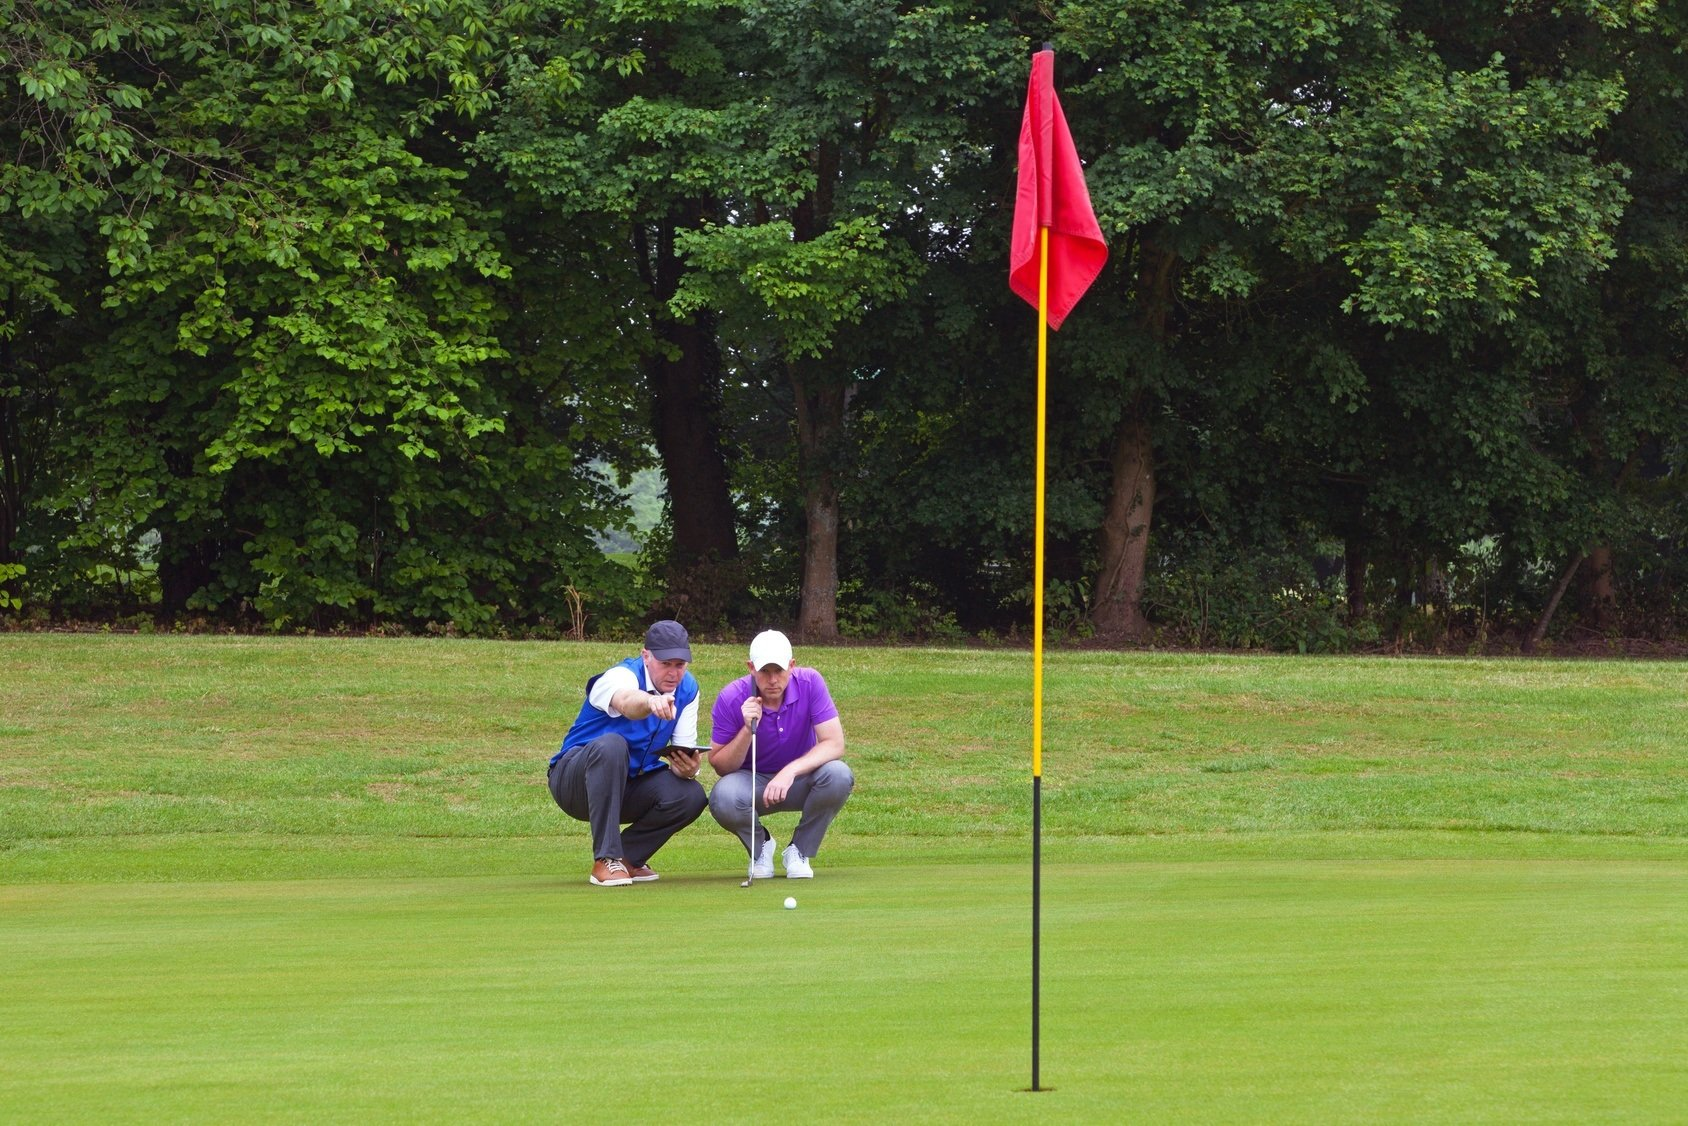 Foto vídeo golf online: el green